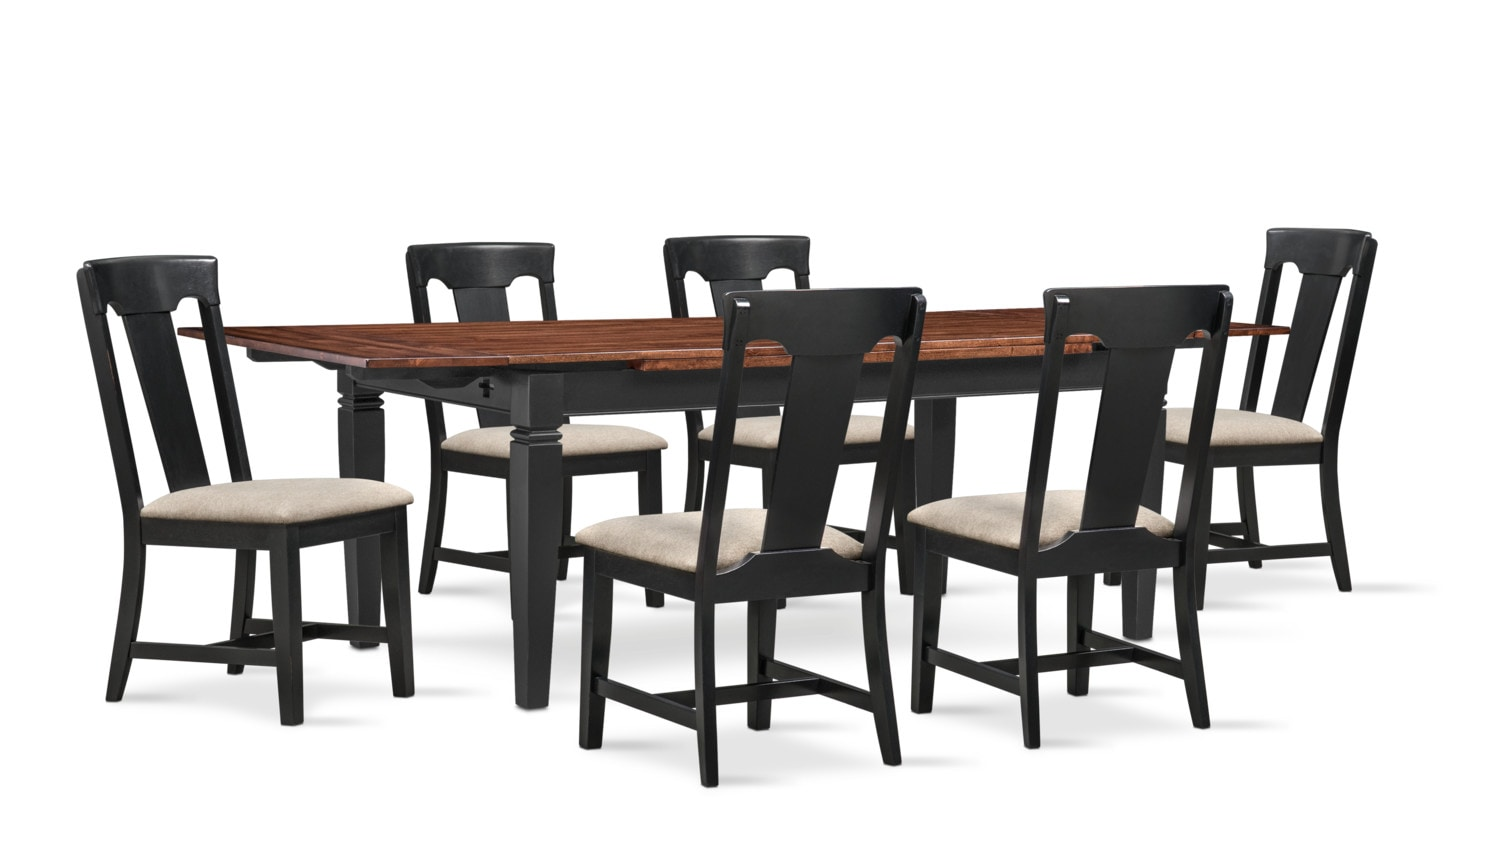 Dining Room Furniture - Adler Dining Table and 6 Dining Chairs